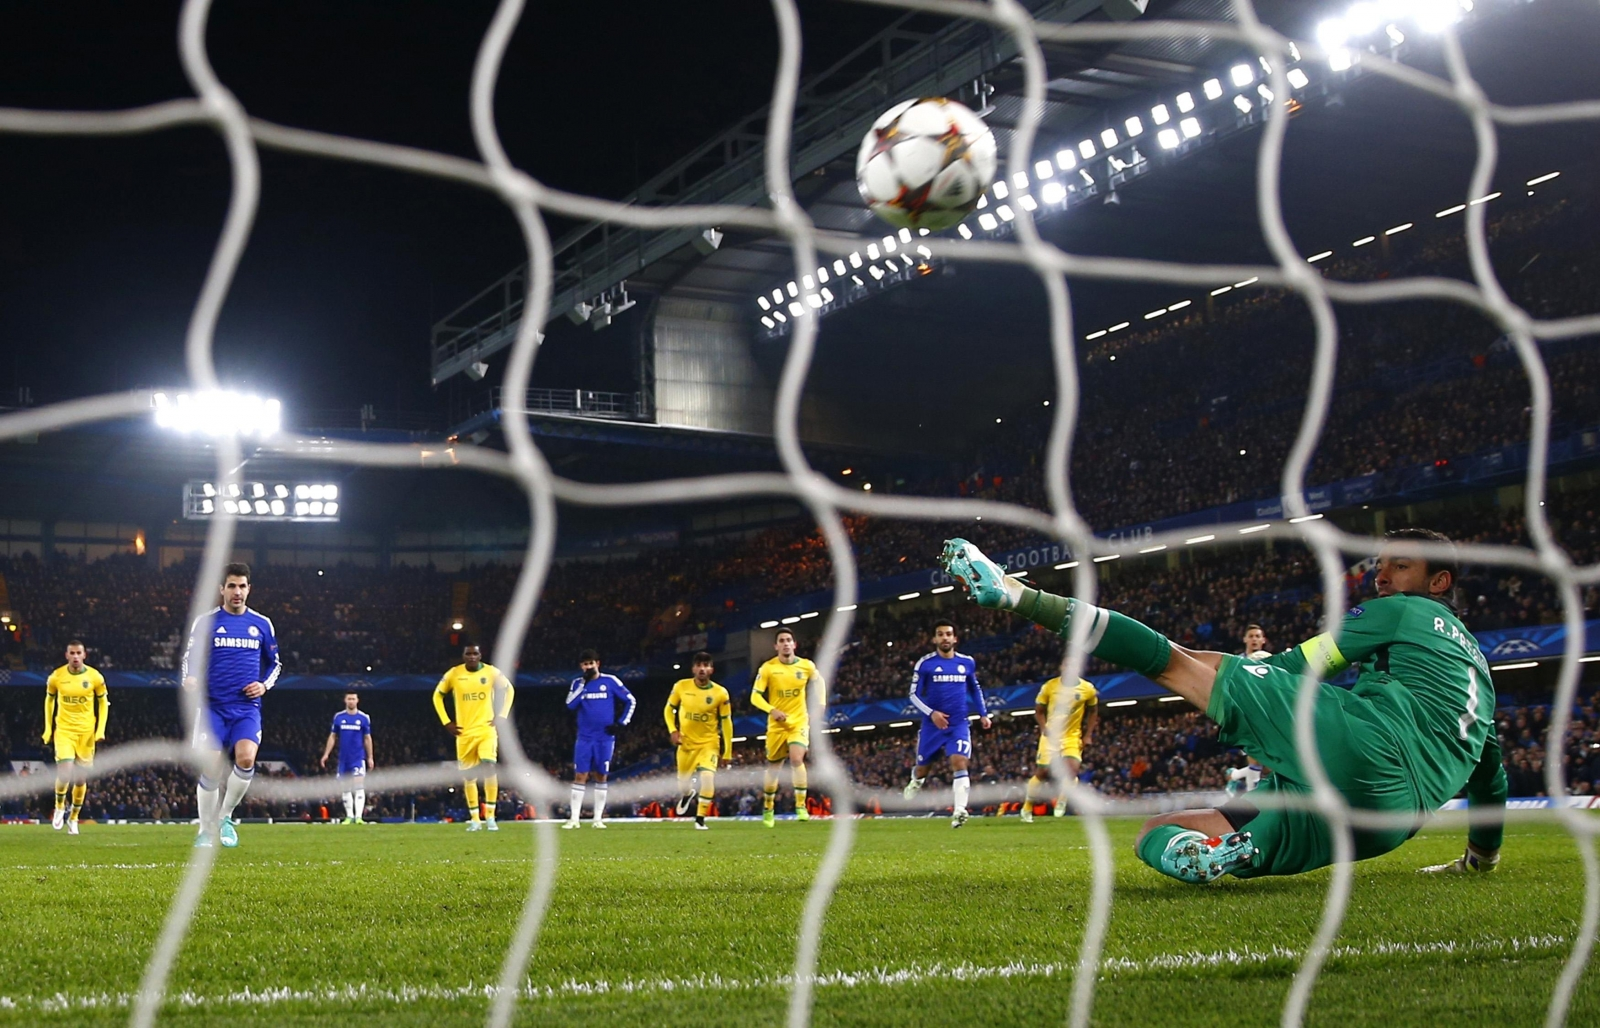 'Champions League starts now' says Mourinho as Chelsea top Group G